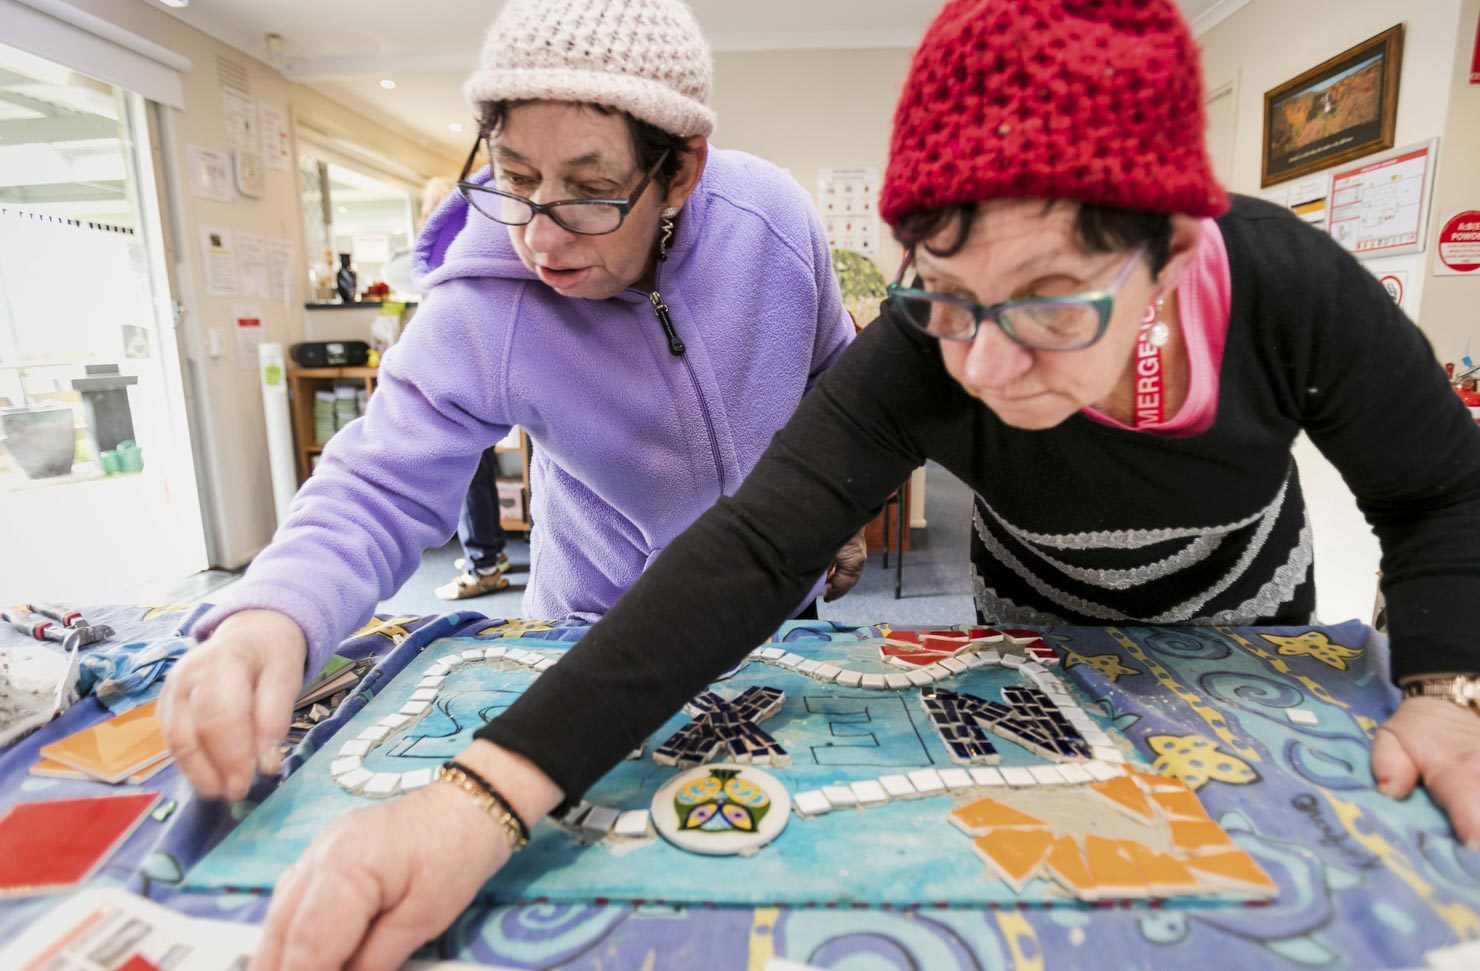 Elderley, aged care, women making crafts